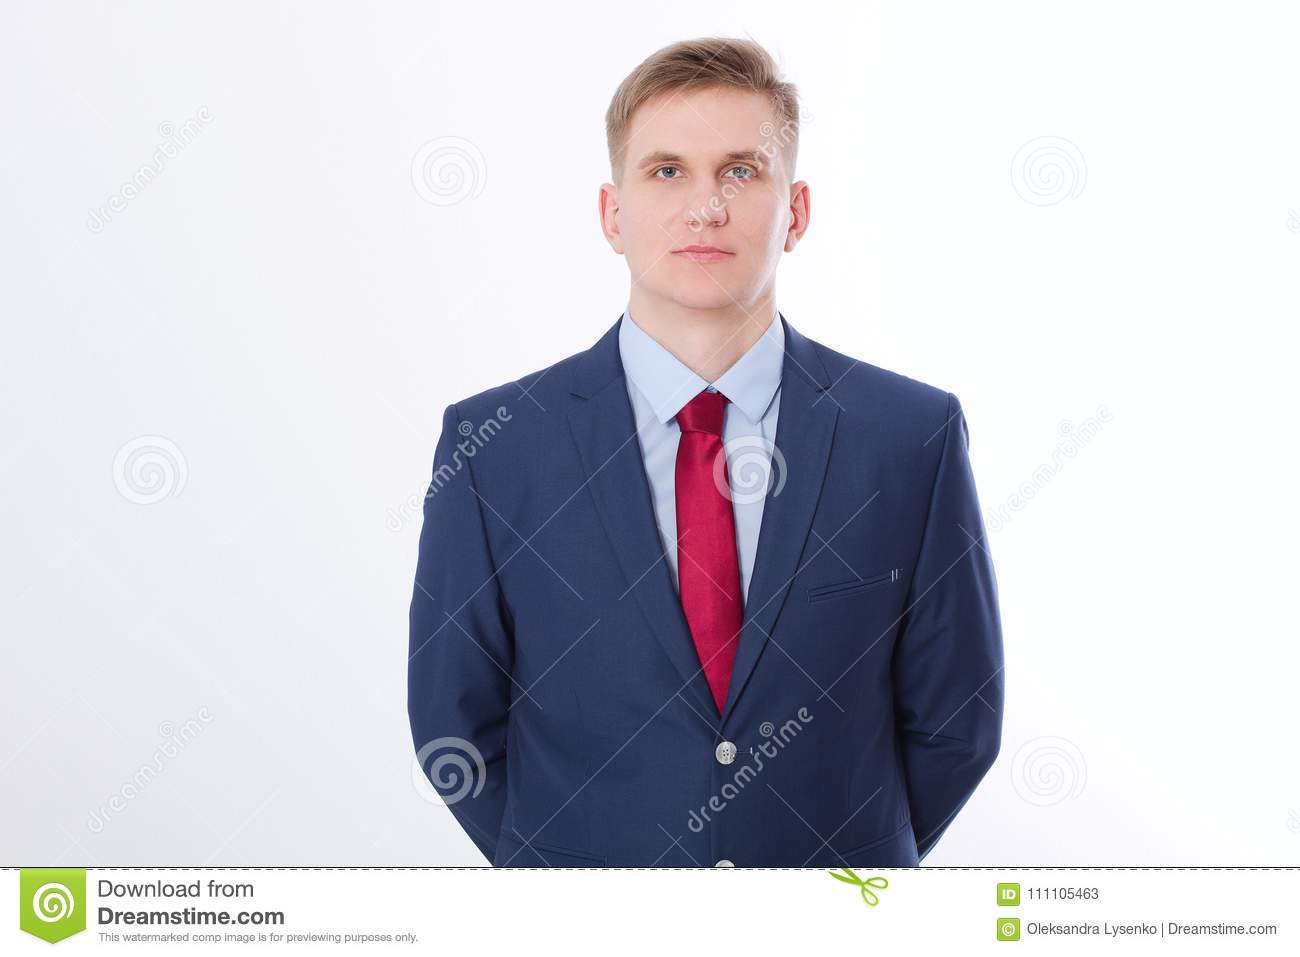 Serious businessman in blue suit and red tie isolated on white background. Business concept. Copy space and mock up.